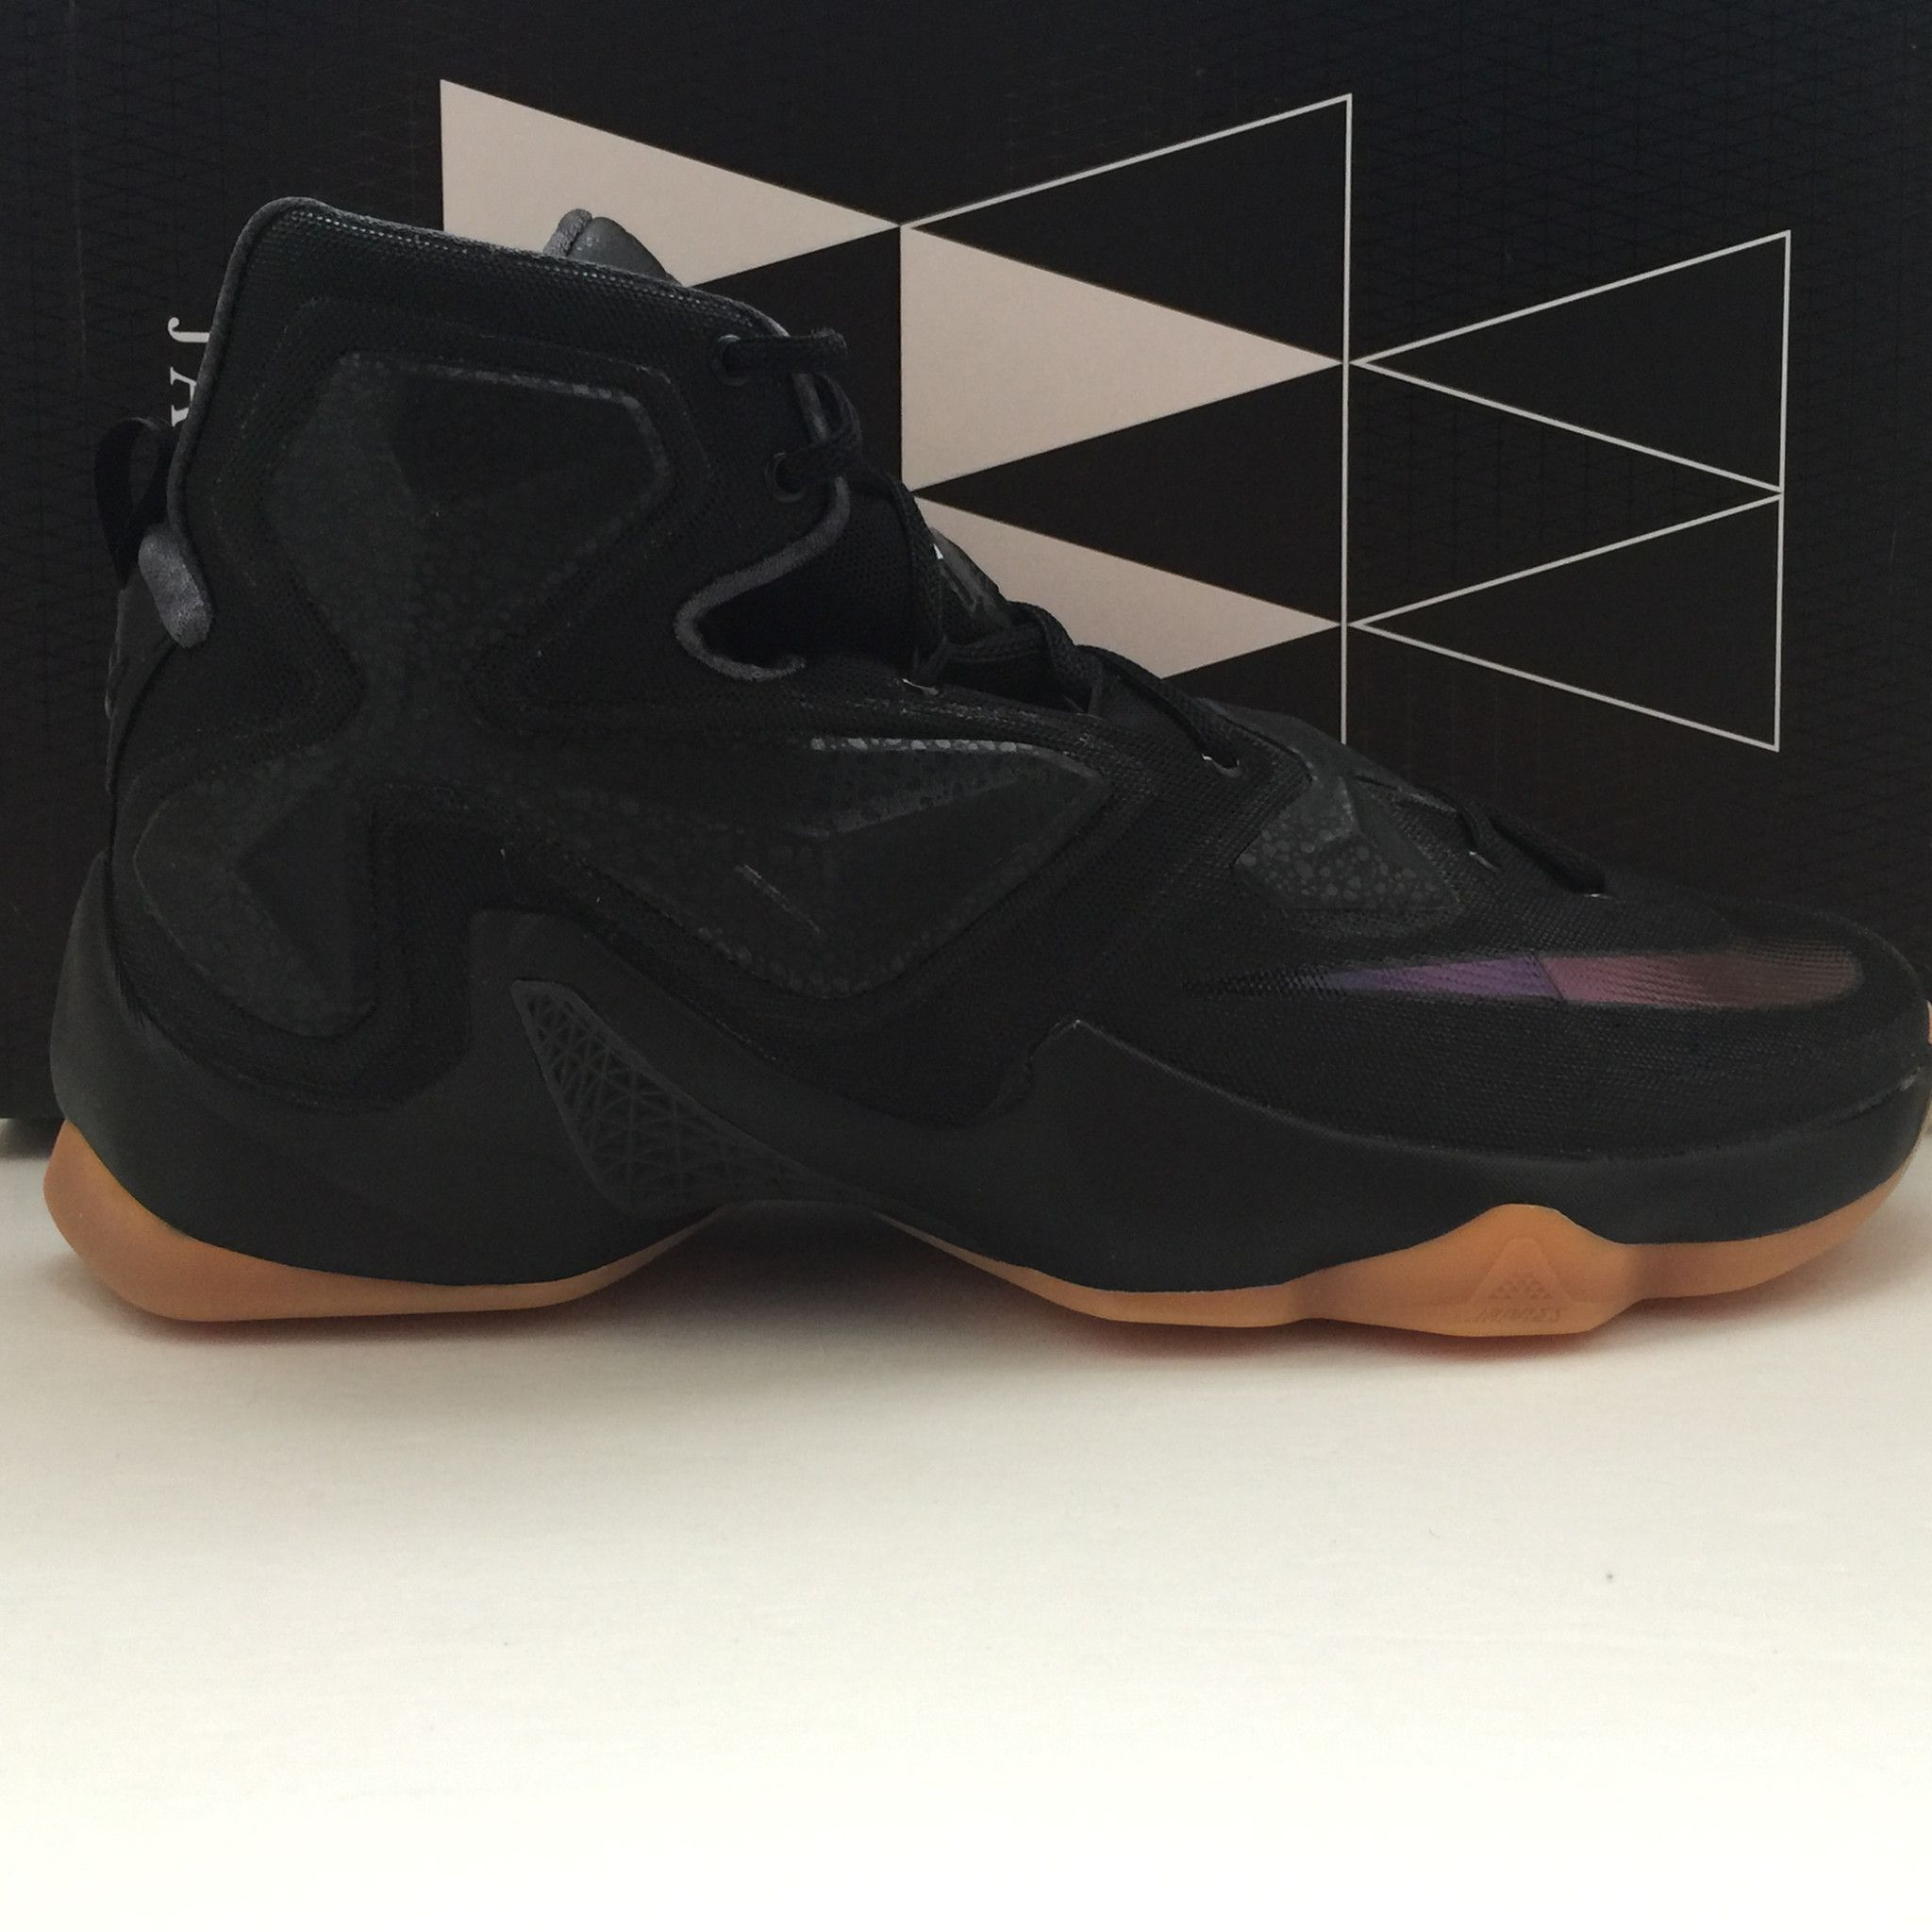 premium selection e551c 69c55 Name  Nike Lebron 13 XIII Black Lion Gum Size  13.5 Condition  New   OG Box  Style Code  807219 001 Year  2016